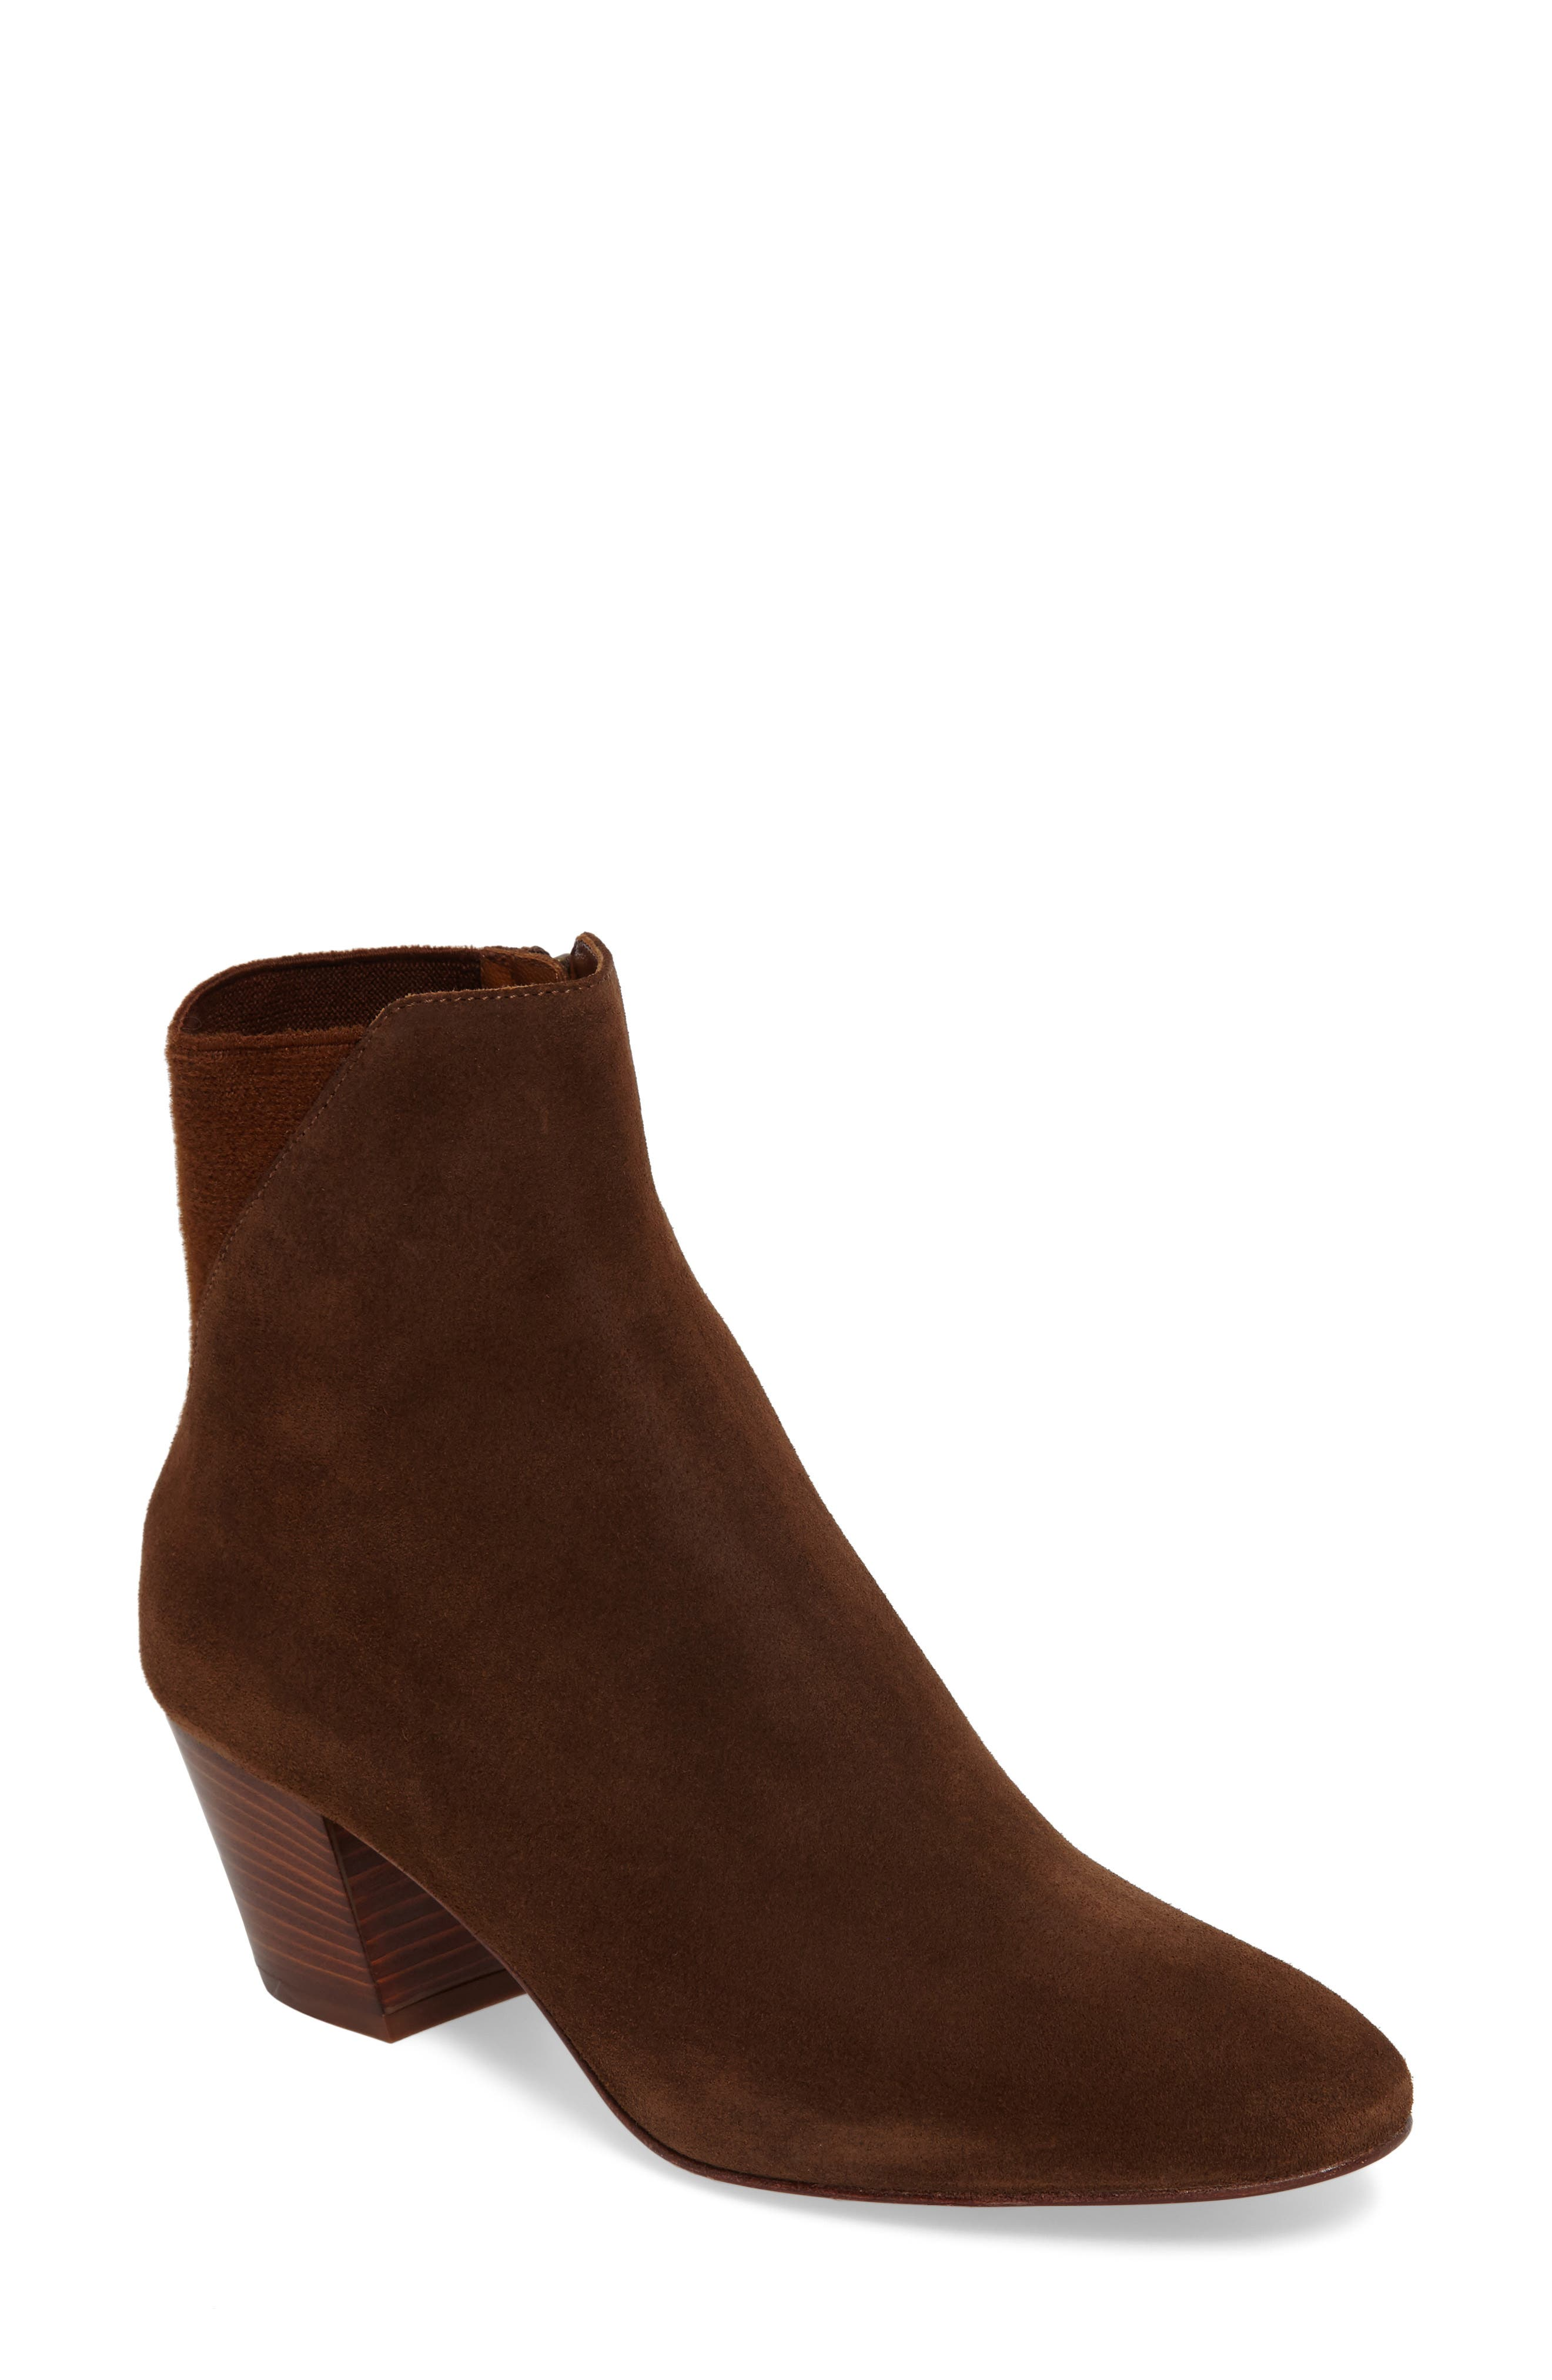 Flaviana Statement Heel Bootie,                             Main thumbnail 1, color,                             Chestnut